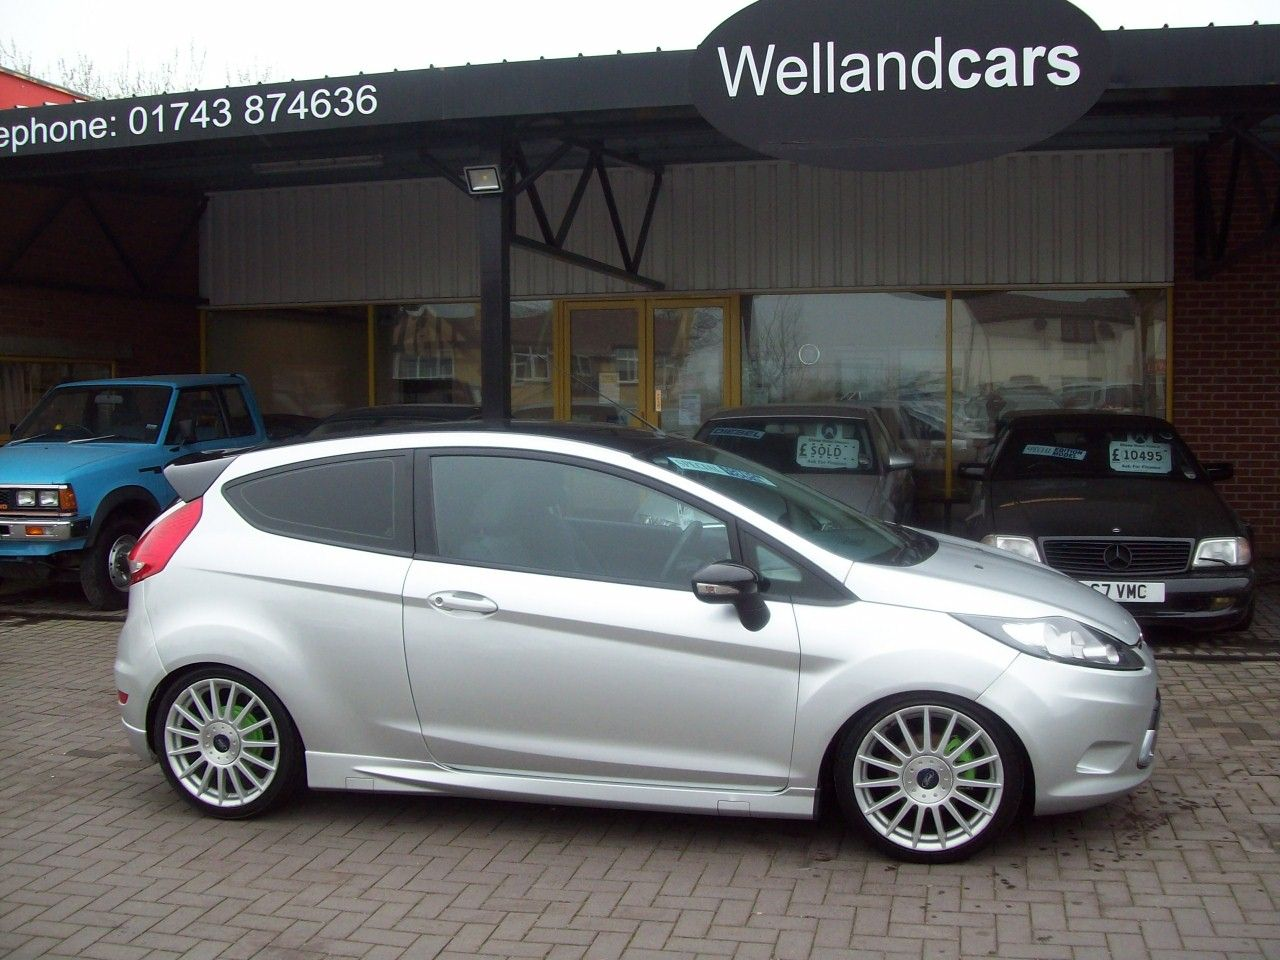 Ford Fiesta 1.25 Style + 3dr [82] A/C, 1 Previous Owner, Zetec `S` Street Pack Body Kit With 17 Alloys. Hatchback Petrol Silver at Welland Cars Shrewsbury